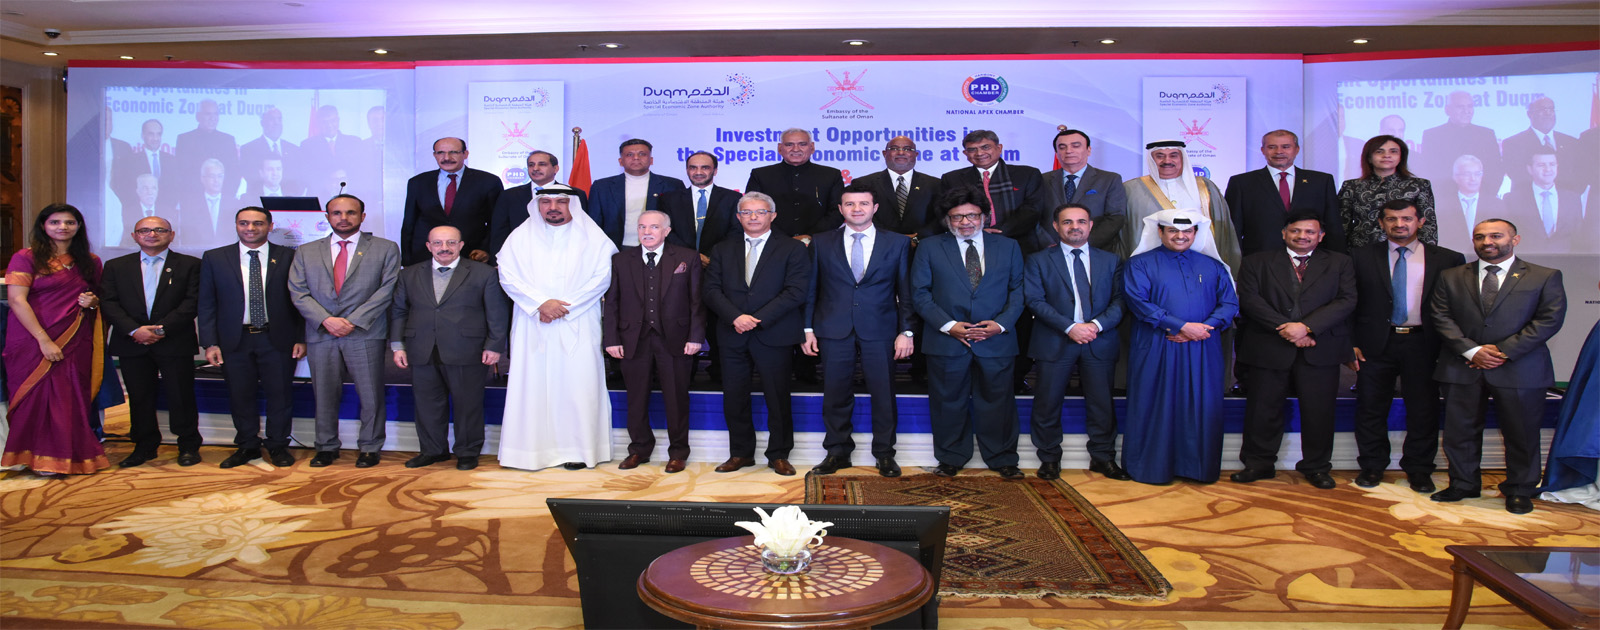 Interactive Session on Investment Opportunities in the Special Economic Zone at Duqm